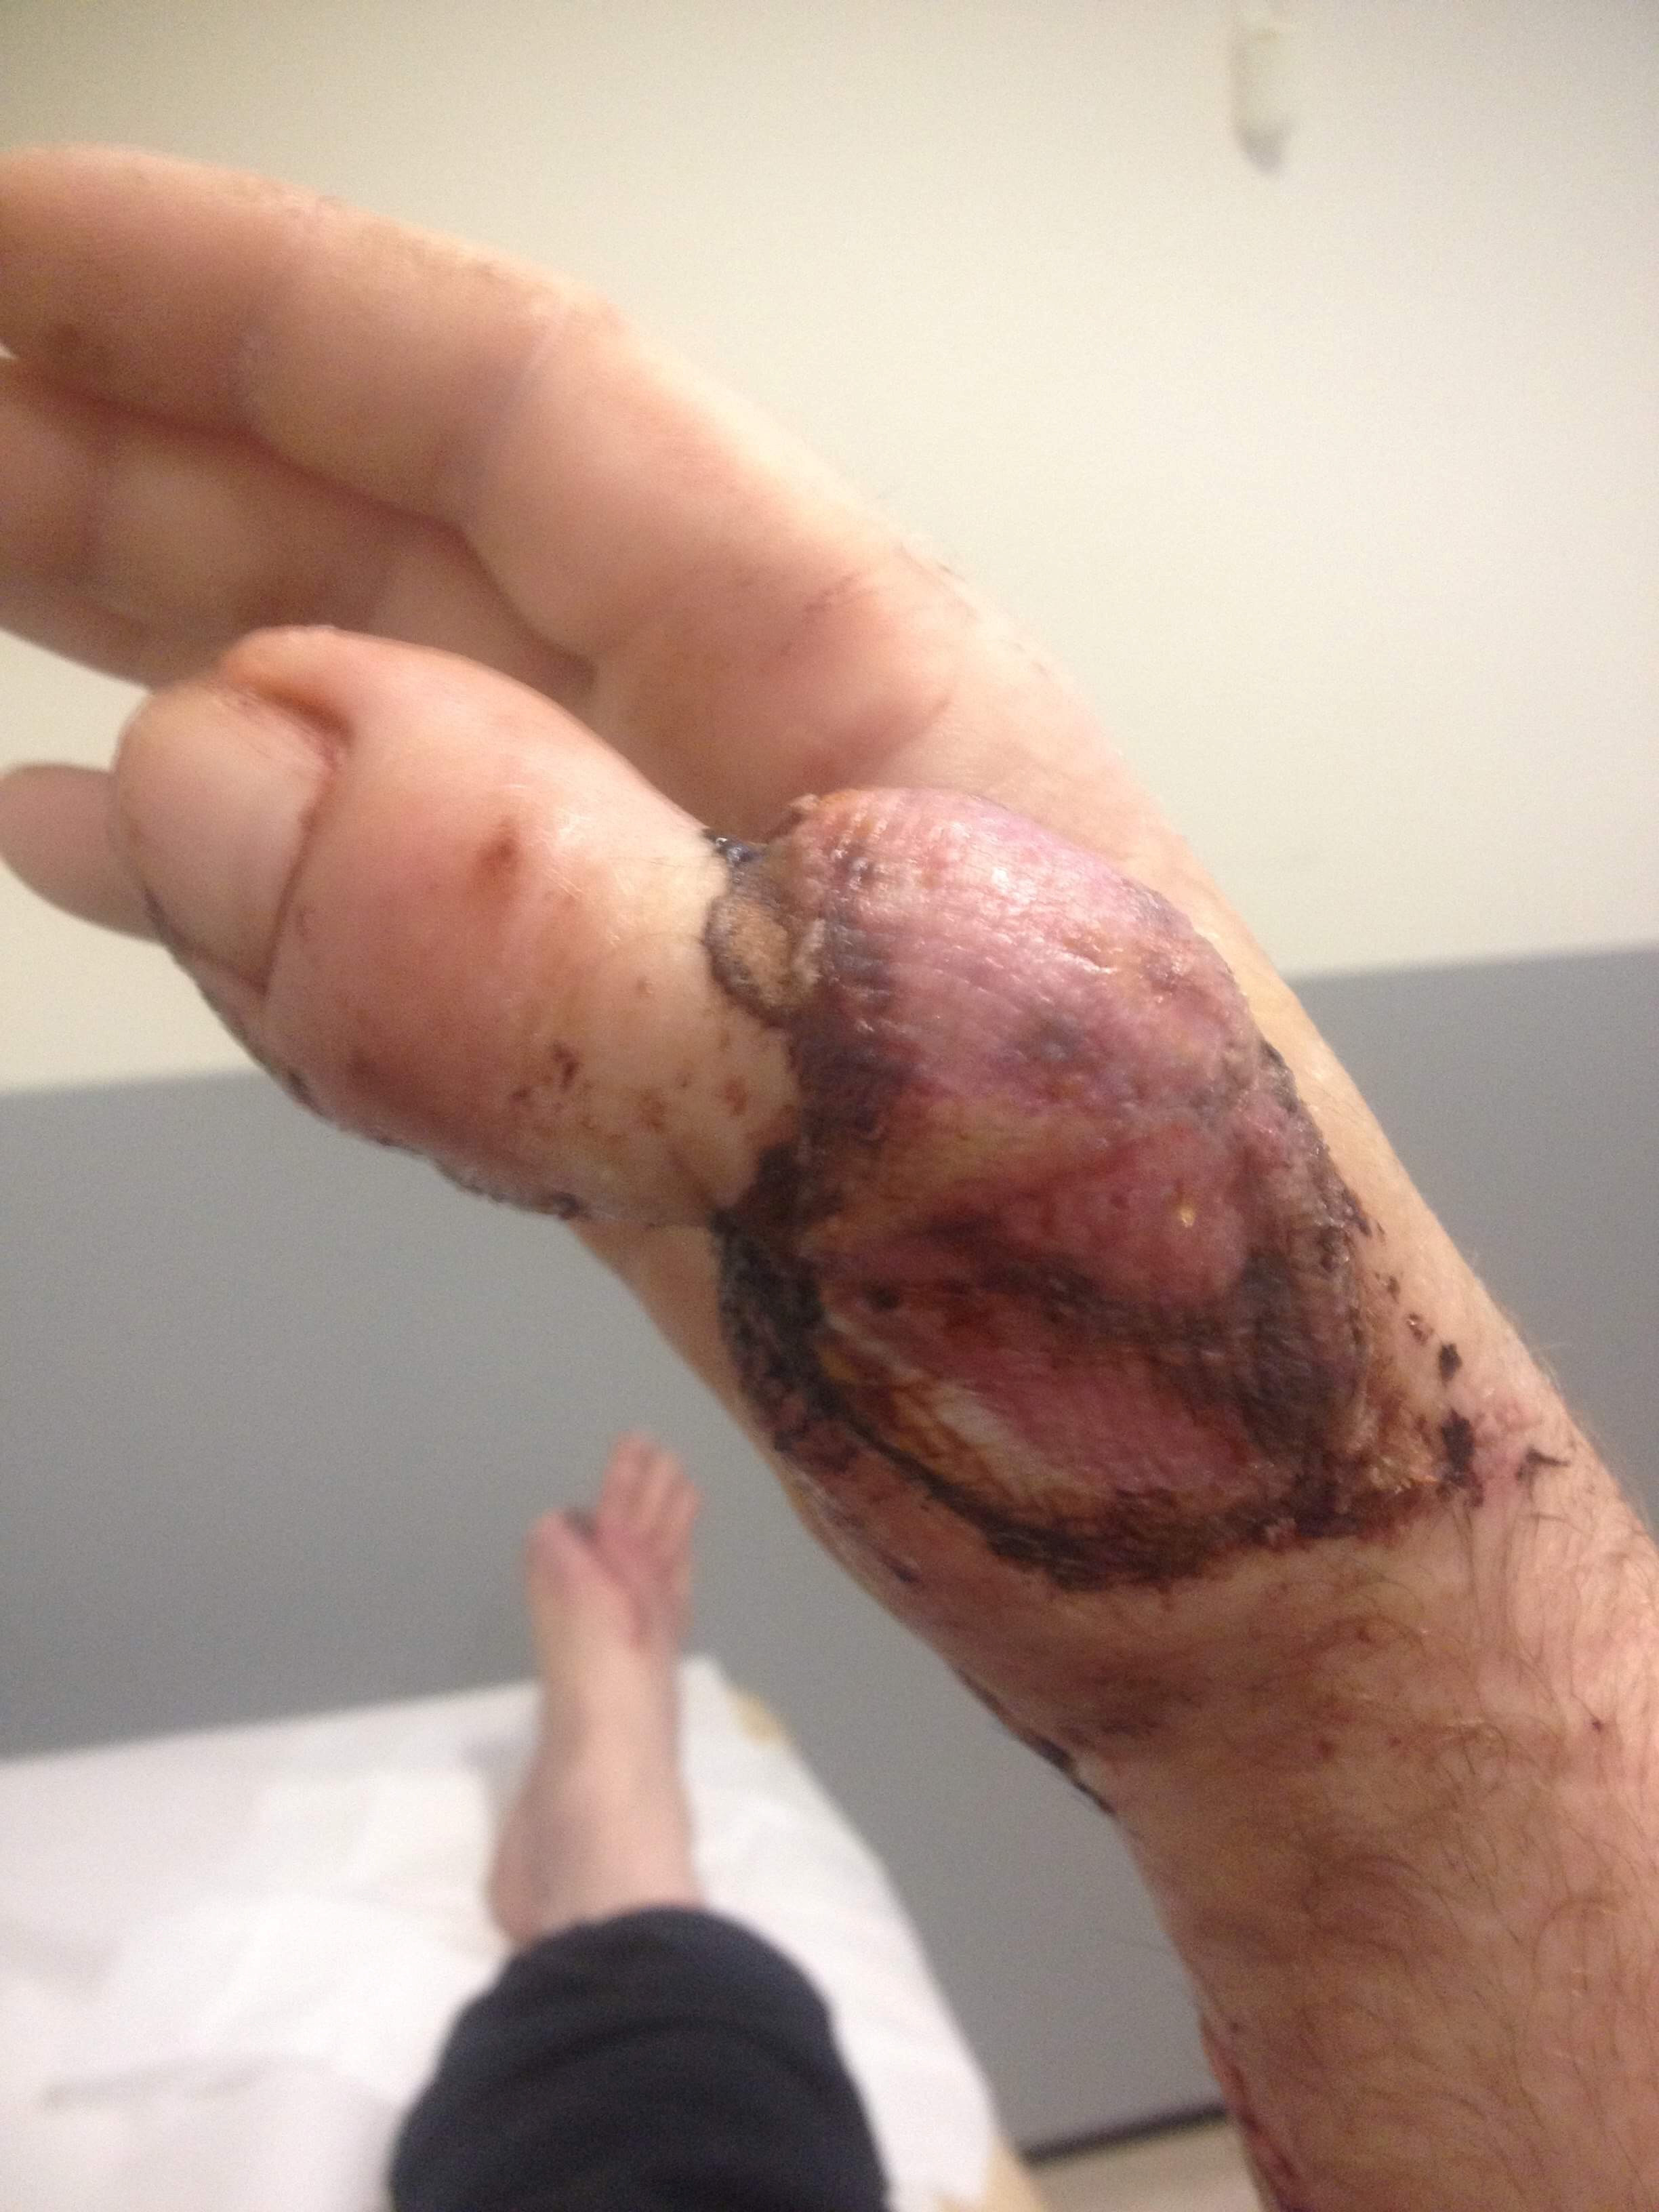 Man showing off toe-thumb after losing thumb in work accident